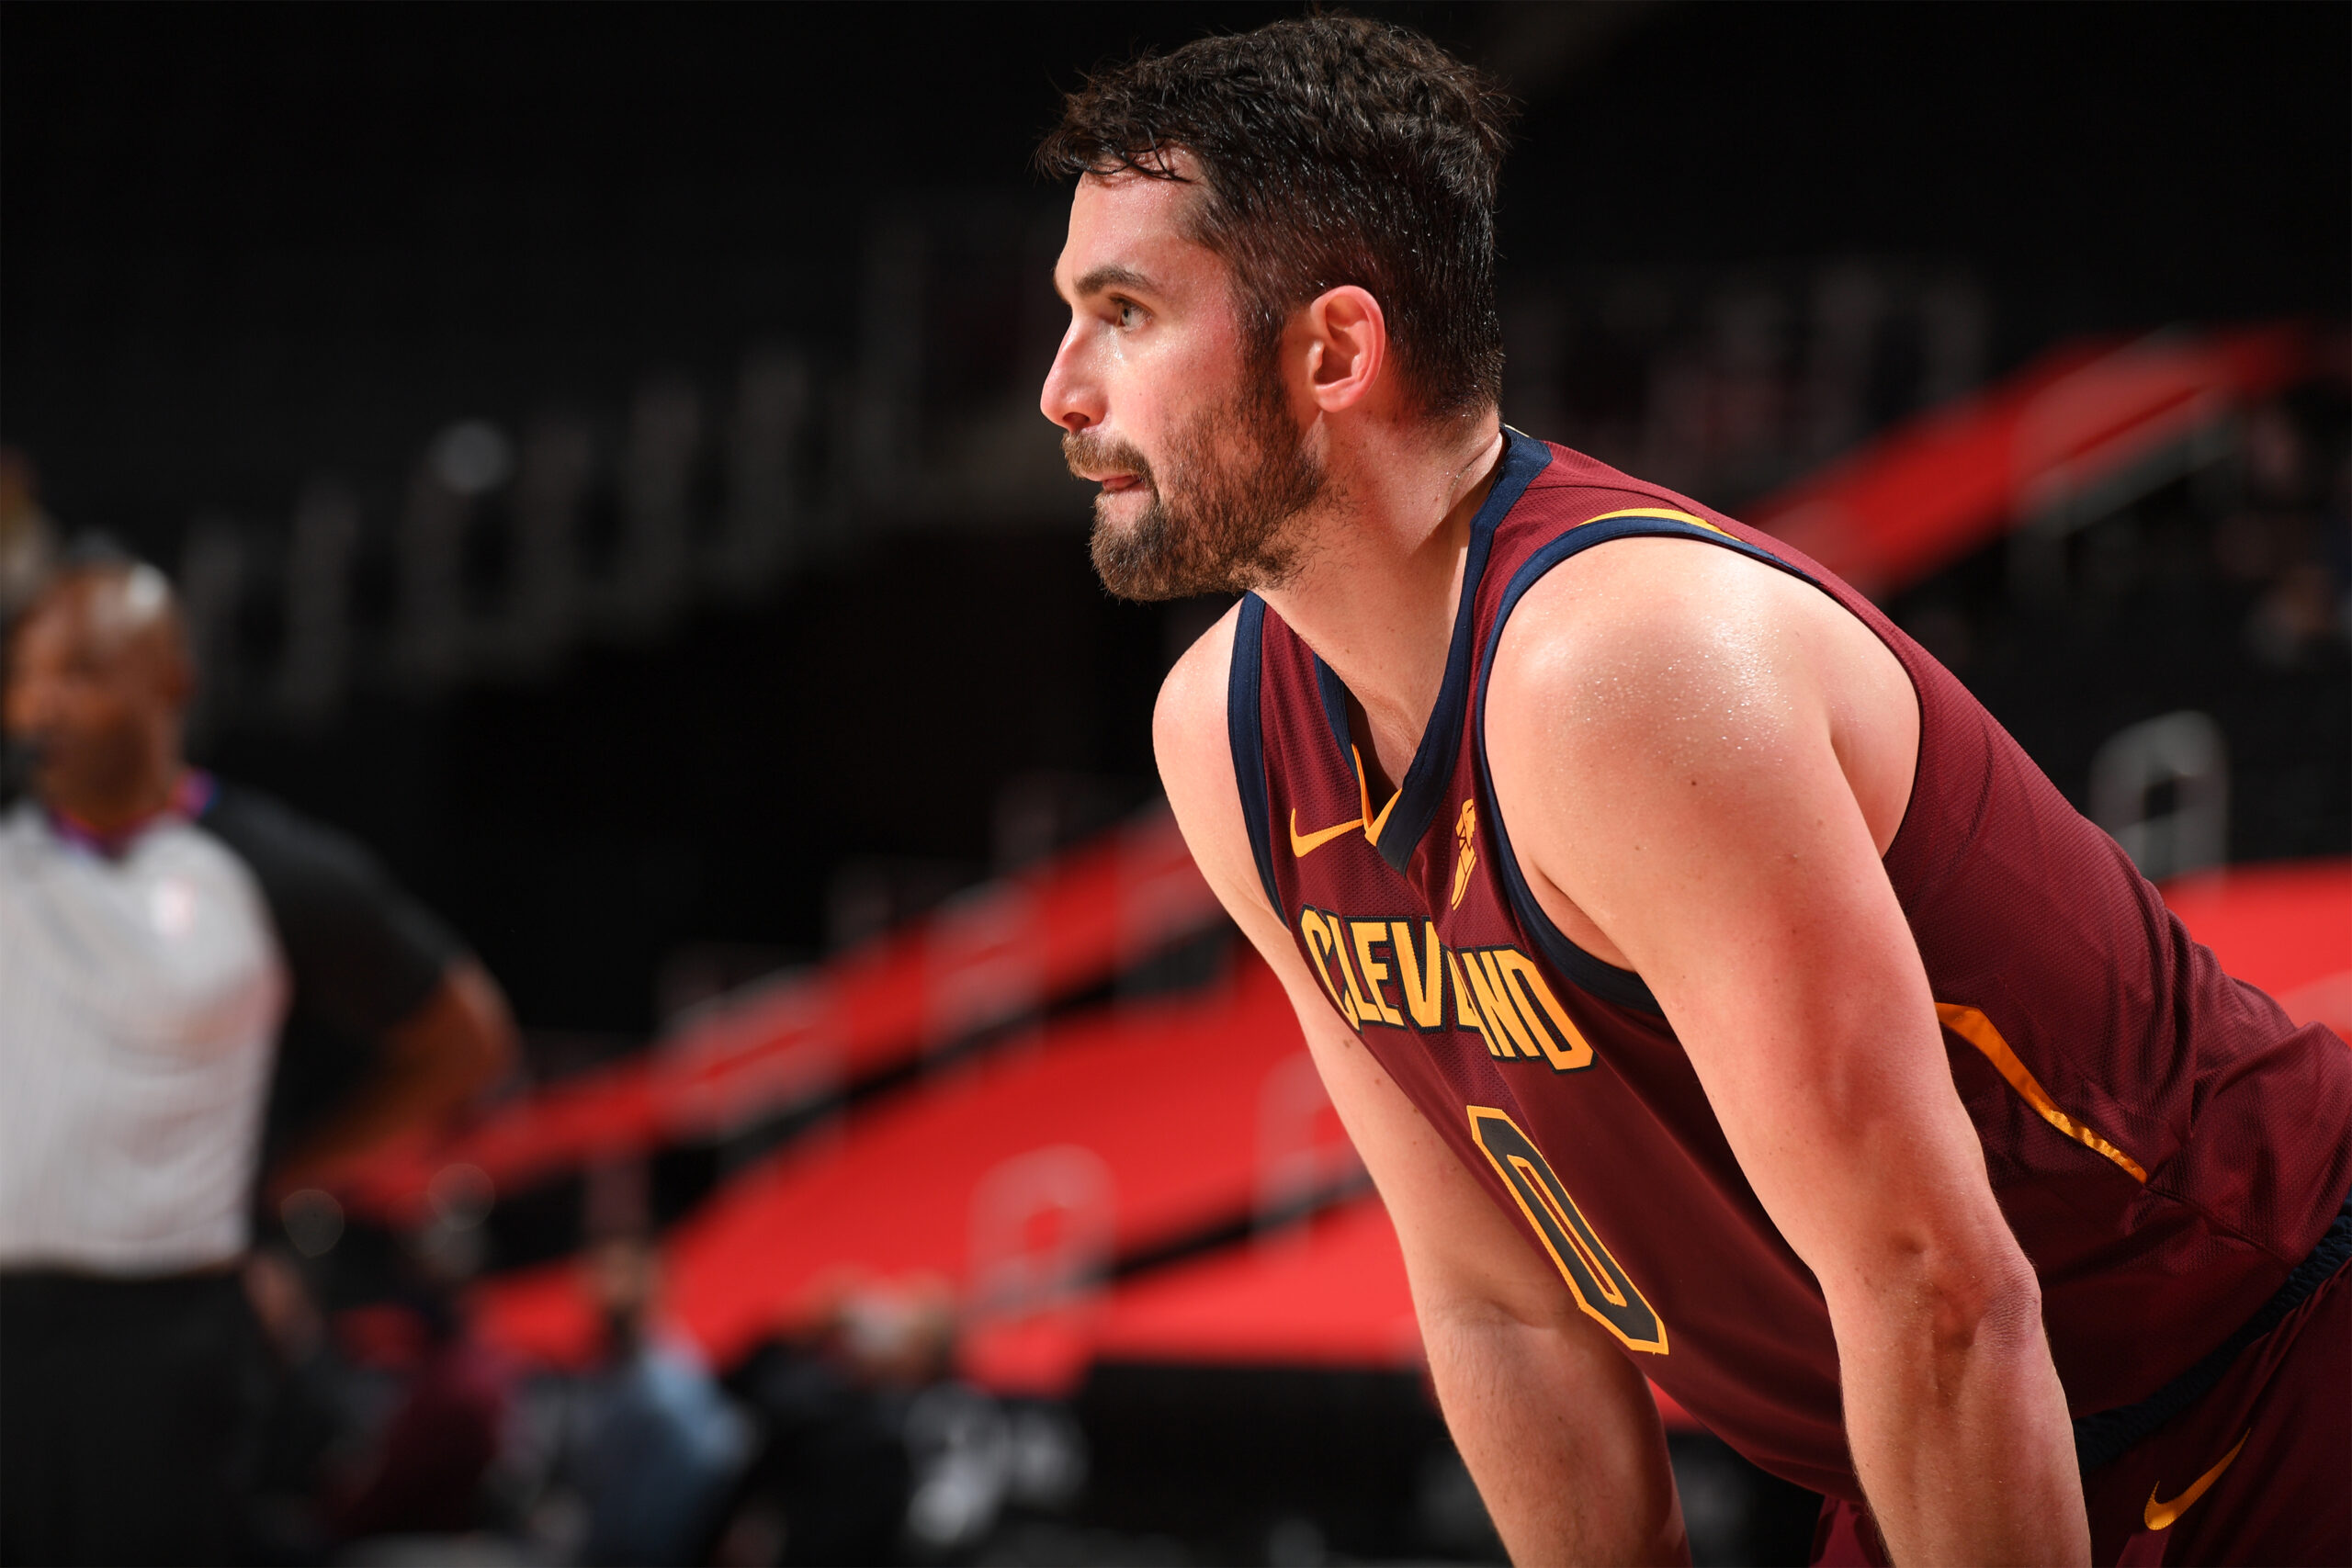 Kevin Love takes part in practice, nears return from injury